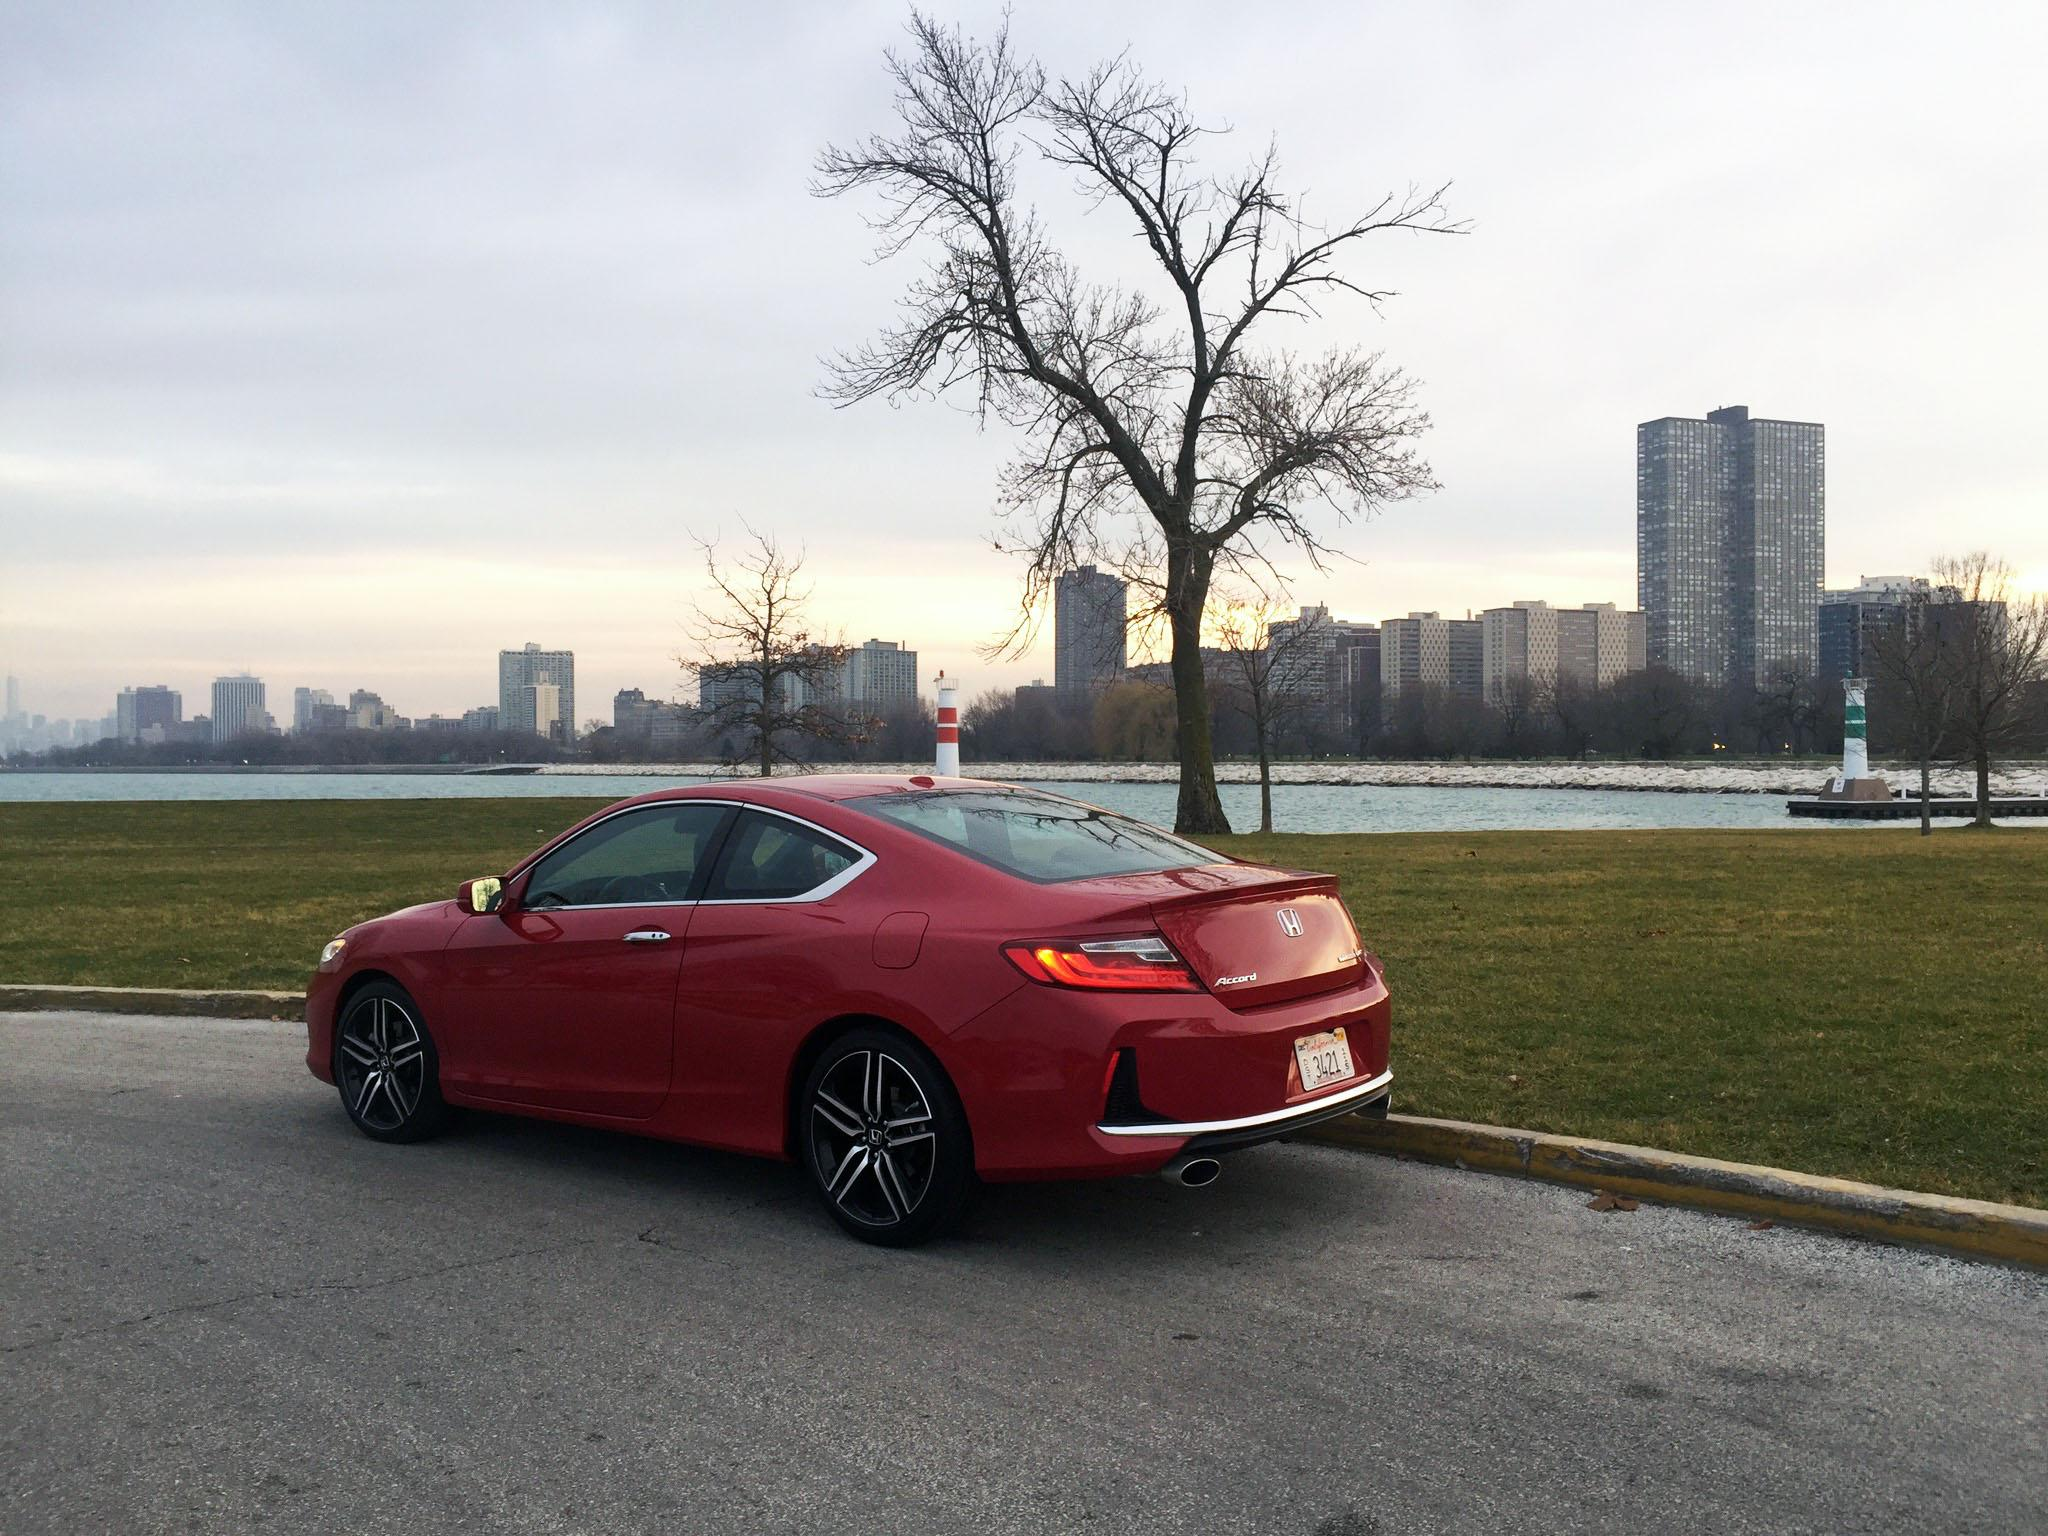 2016 honda accord coupe a fun and sporty honda for 03 honda accord coupe